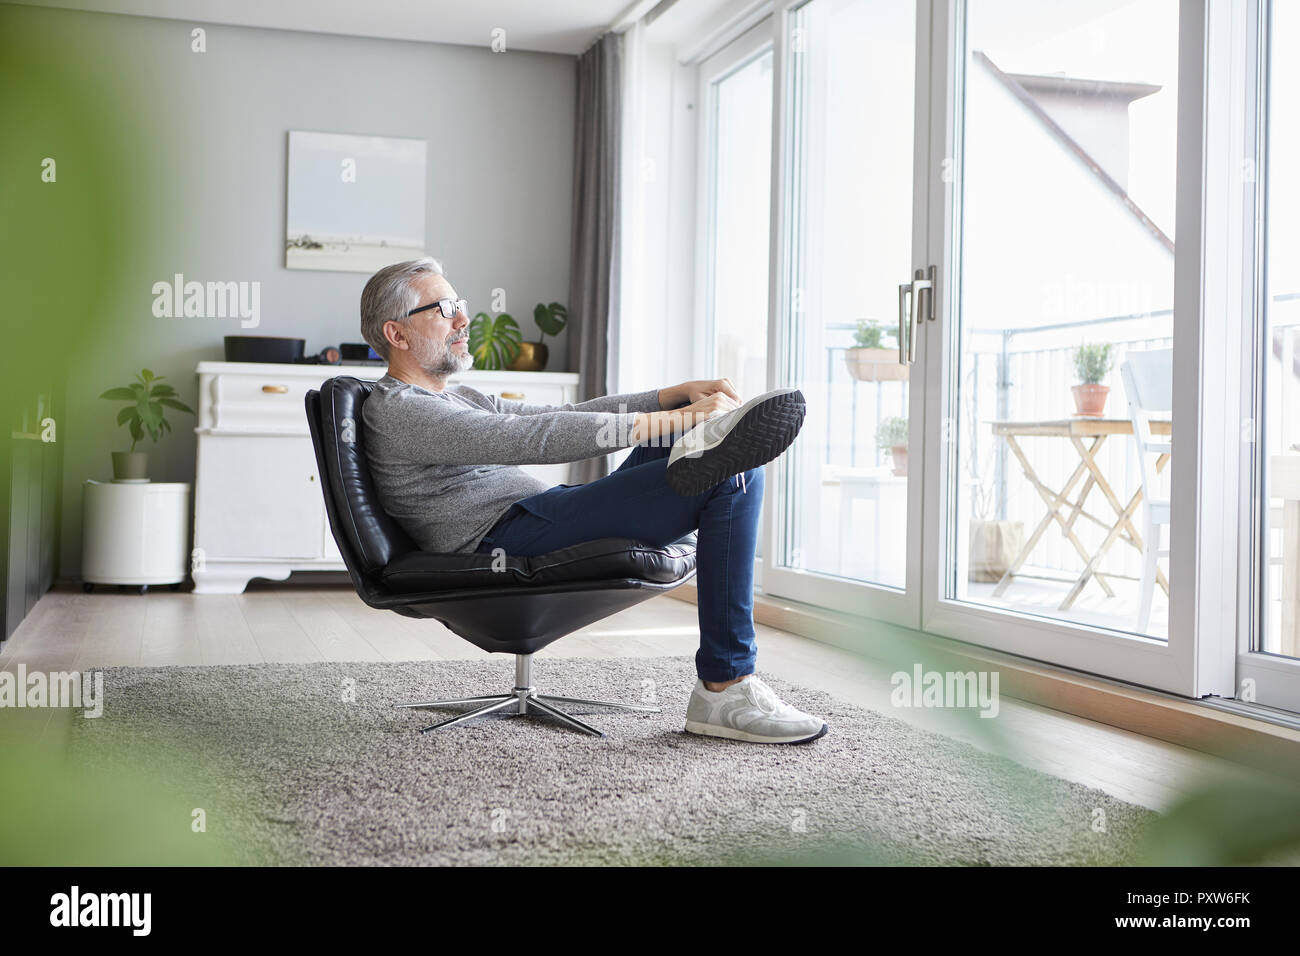 Mature man relaxing on leather chair in his living room looking out of window - Stock Image